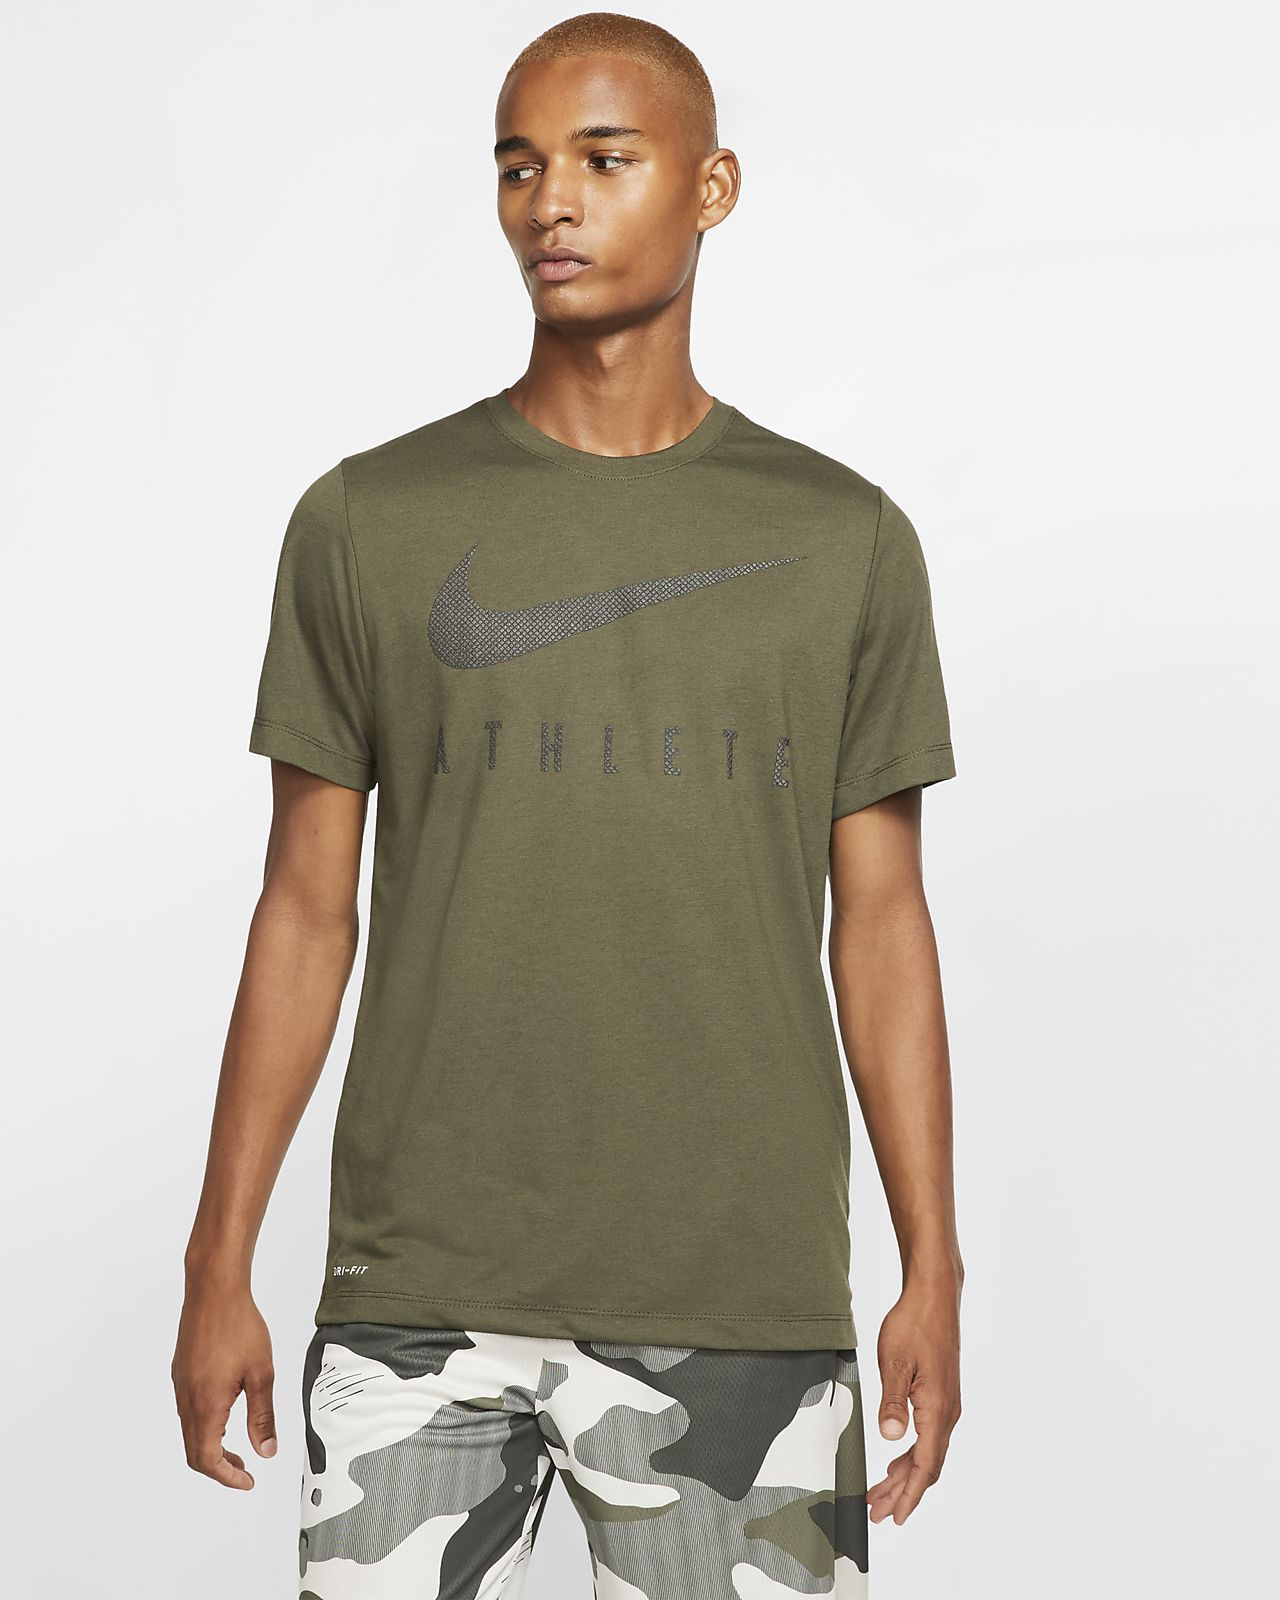 T-shirt da training con Swoosh Nike Dri-FIT - Uomo